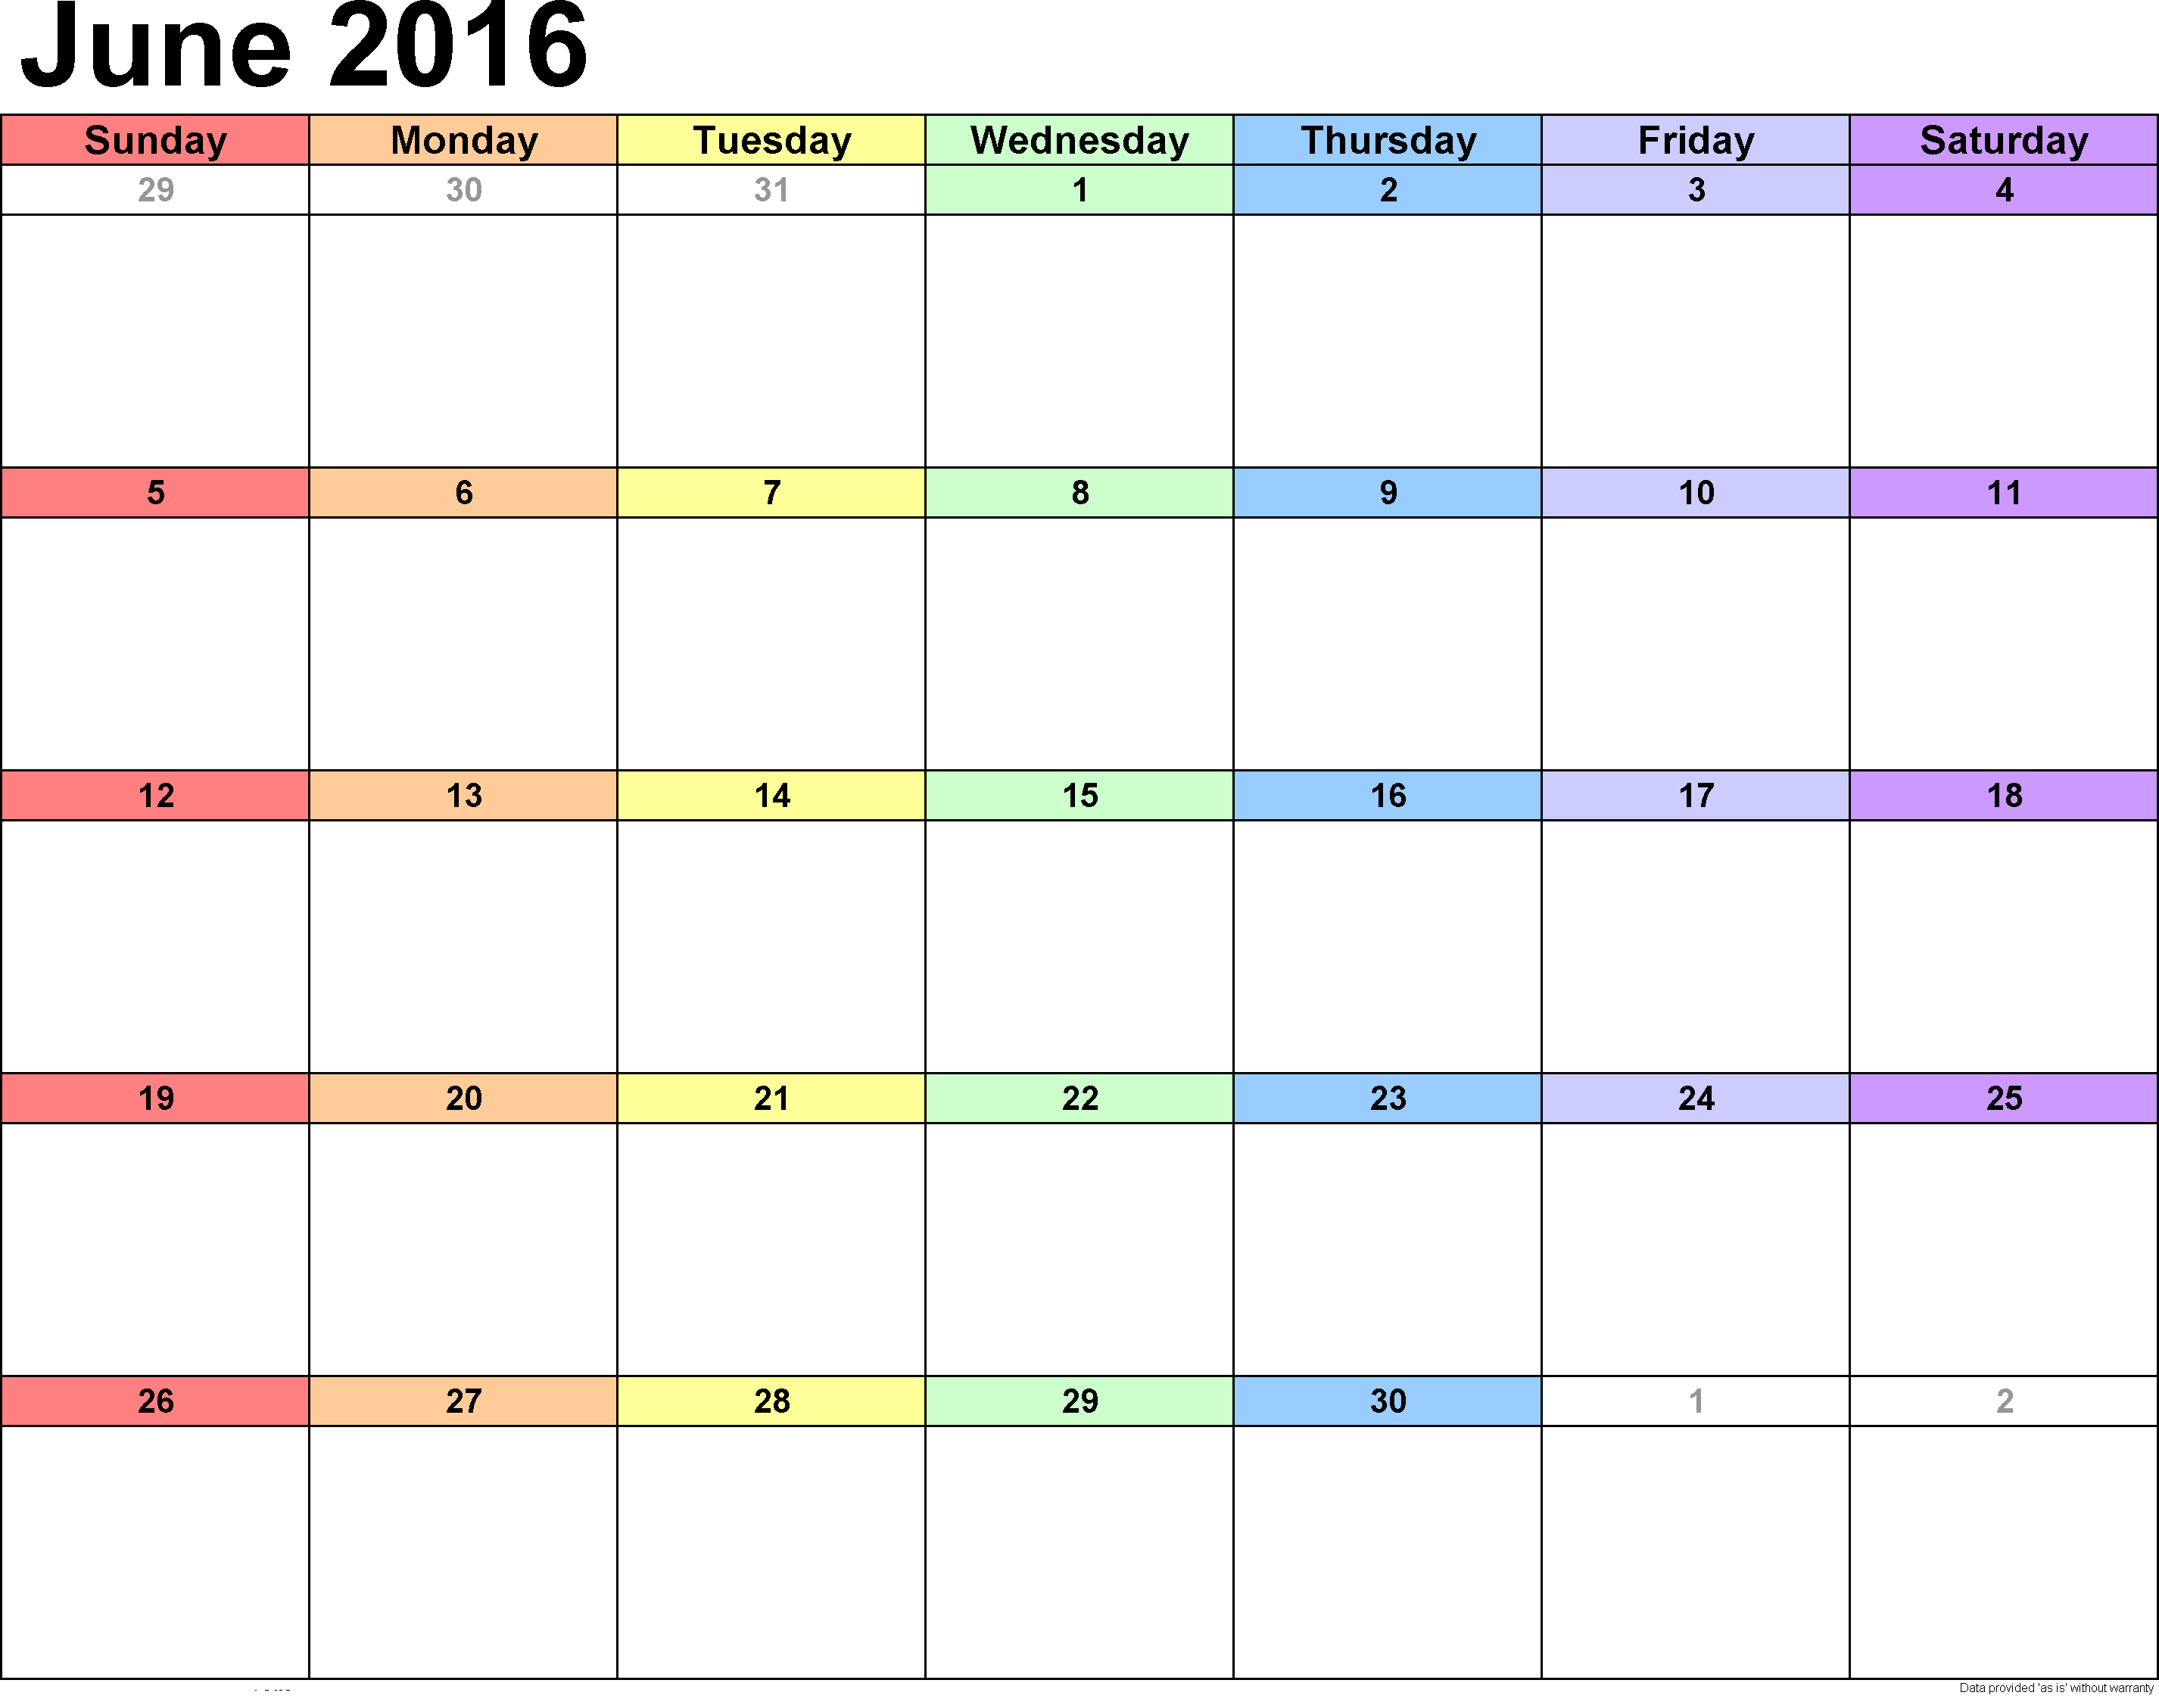 Weekly Calendar, June 2016 Weekly Calendar Printable, Weekly June 2016